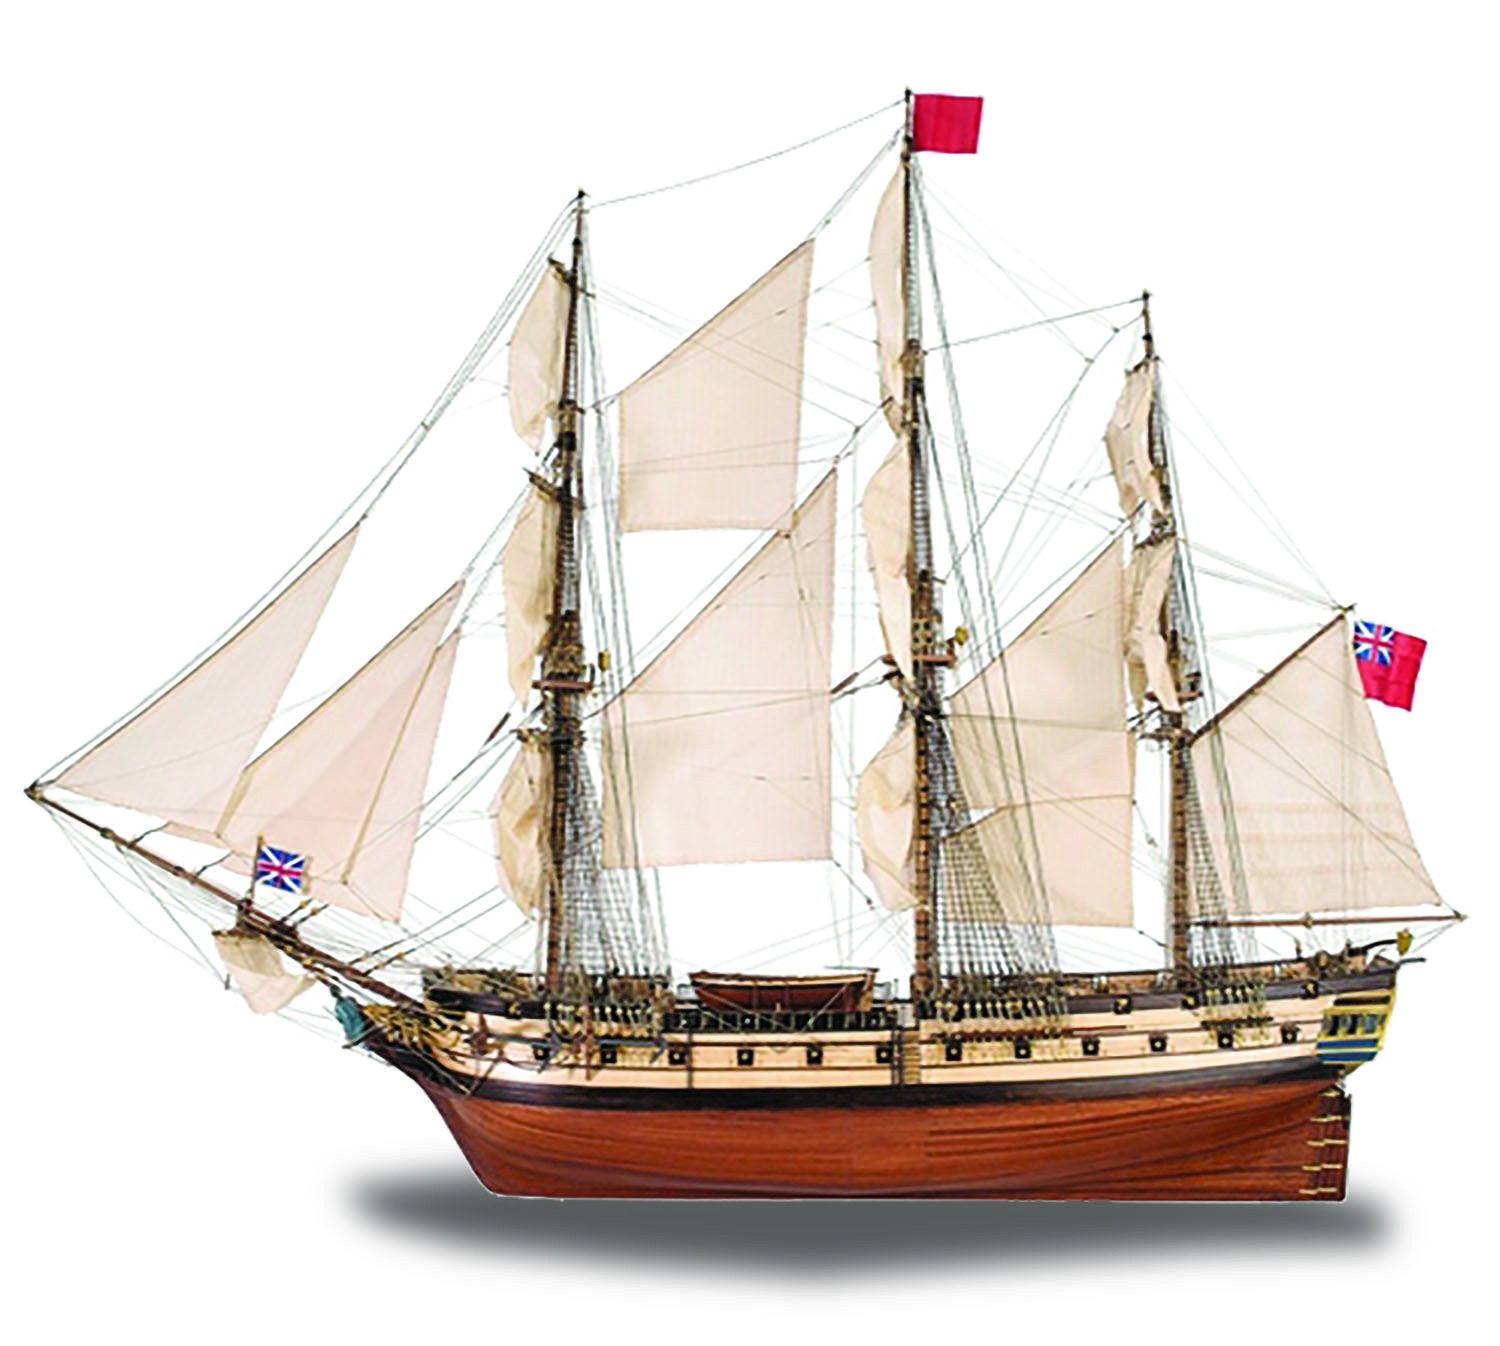 rc cars accessories with Build The Hms Surprise on 5050755 together with Dji Spreadwings S900 Multi Rotor System in addition 71540 Car Accessories Script V11 likewise Dickie Toys 201119884 Mercedes Benz Actros Conrad RC Model together with Product large.